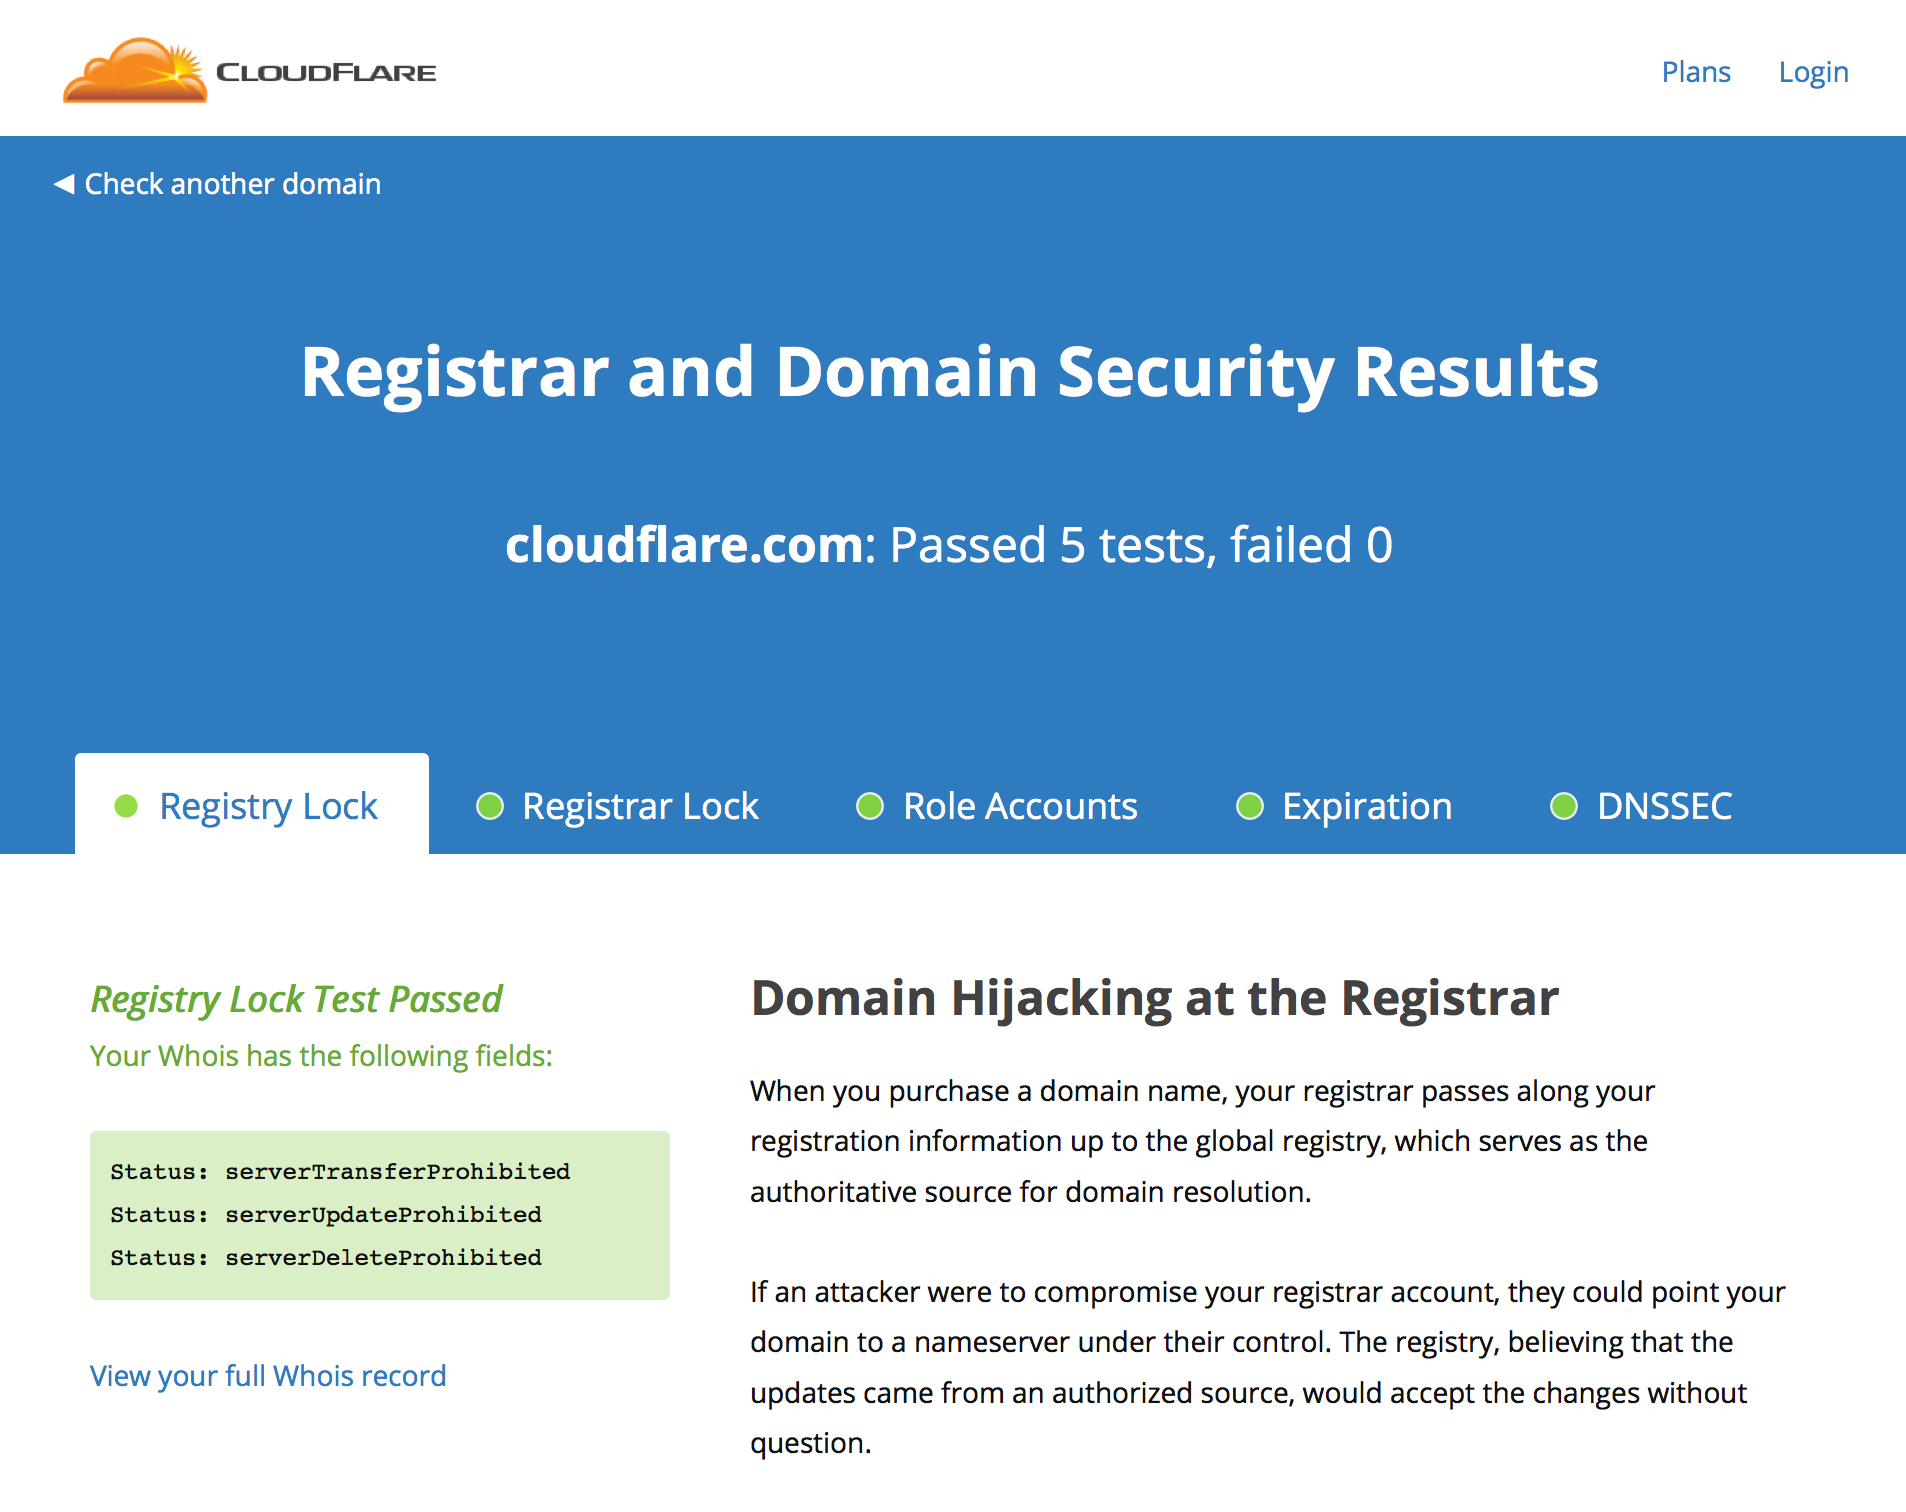 Screenshot of CloudFlare's Domain and Registrar Security Tool